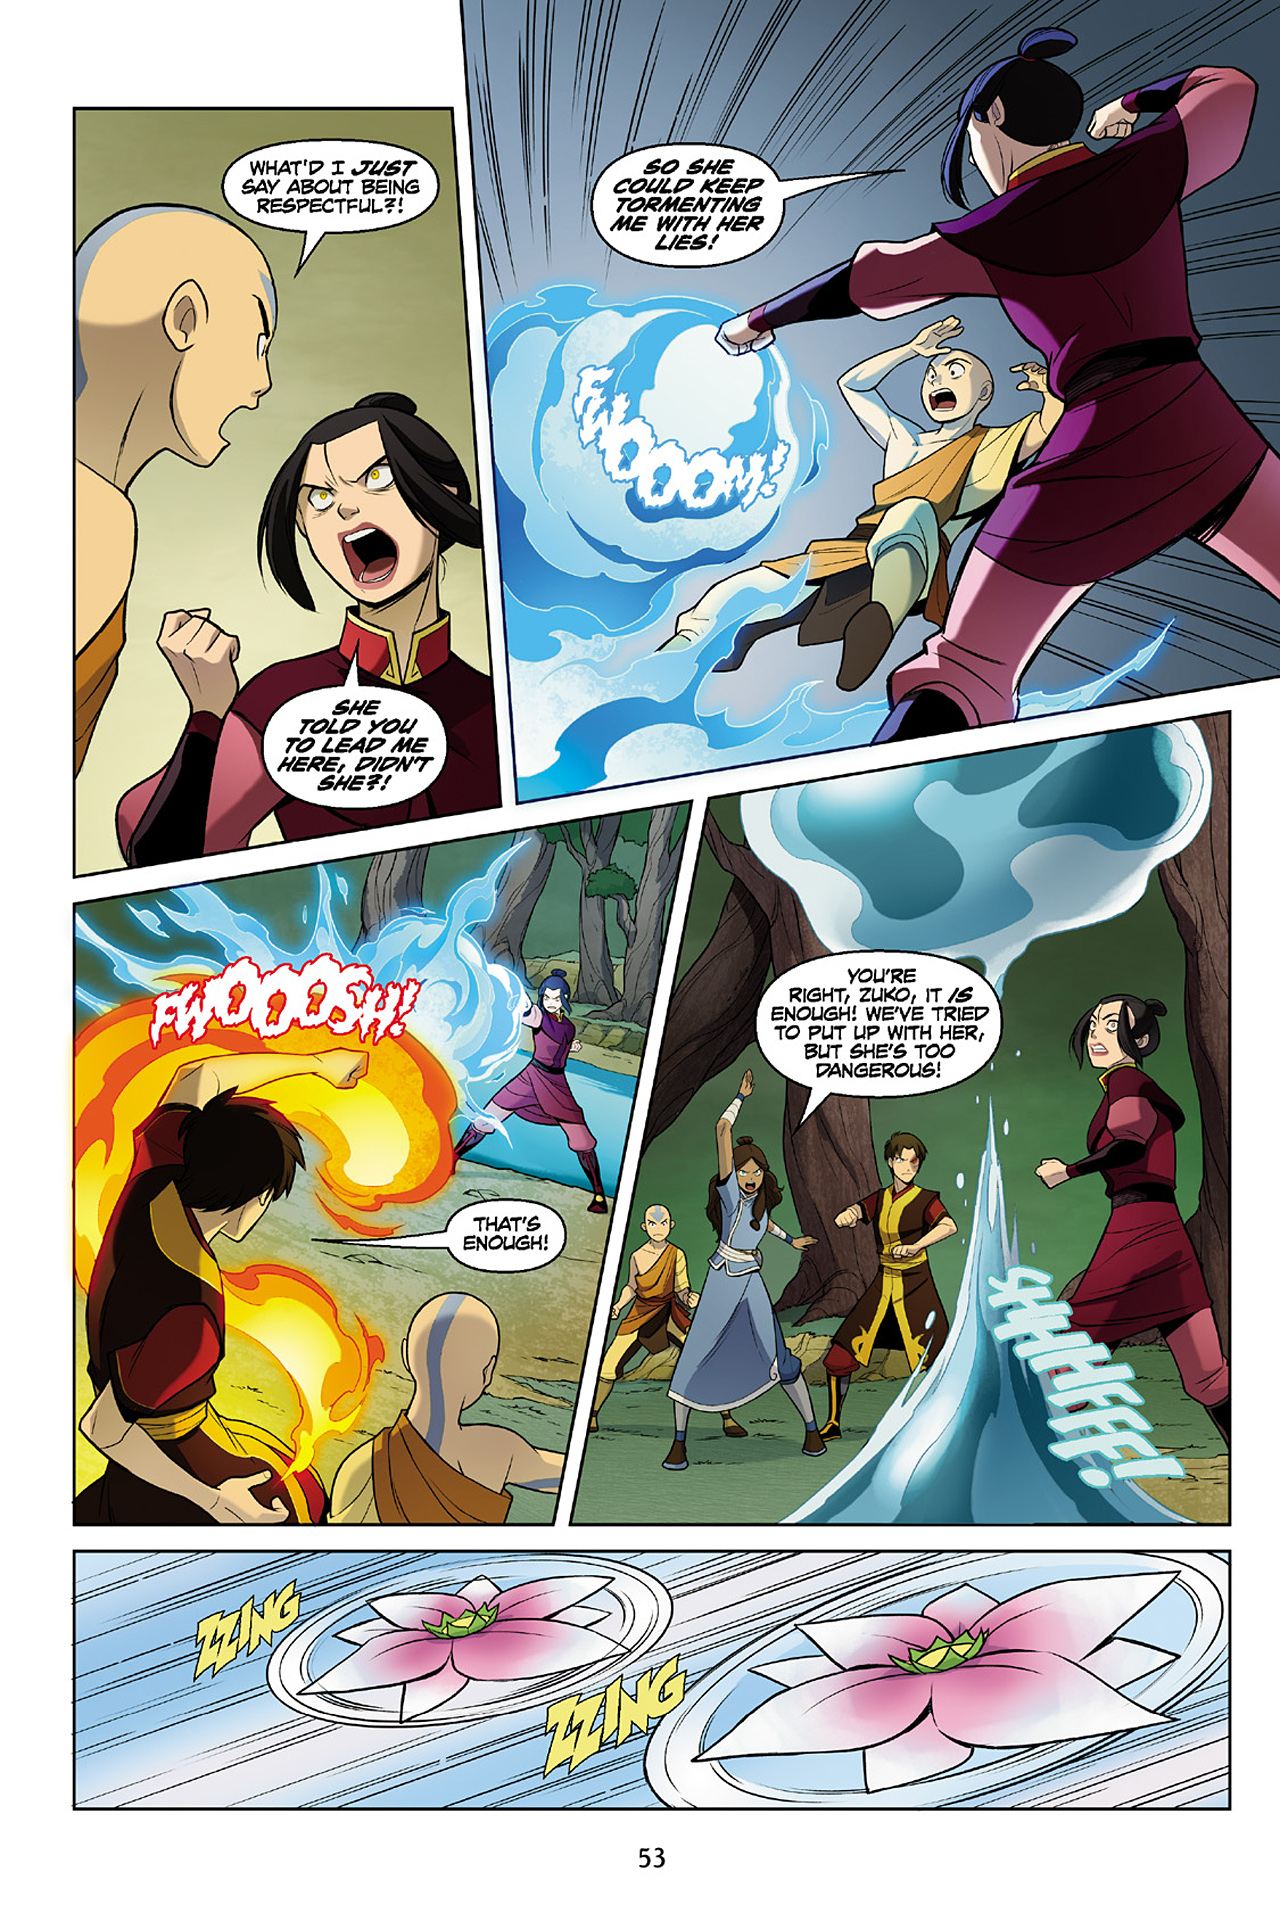 Read online Nickelodeon Avatar: The Last Airbender - The Search comic -  Issue # Part 2 - 54